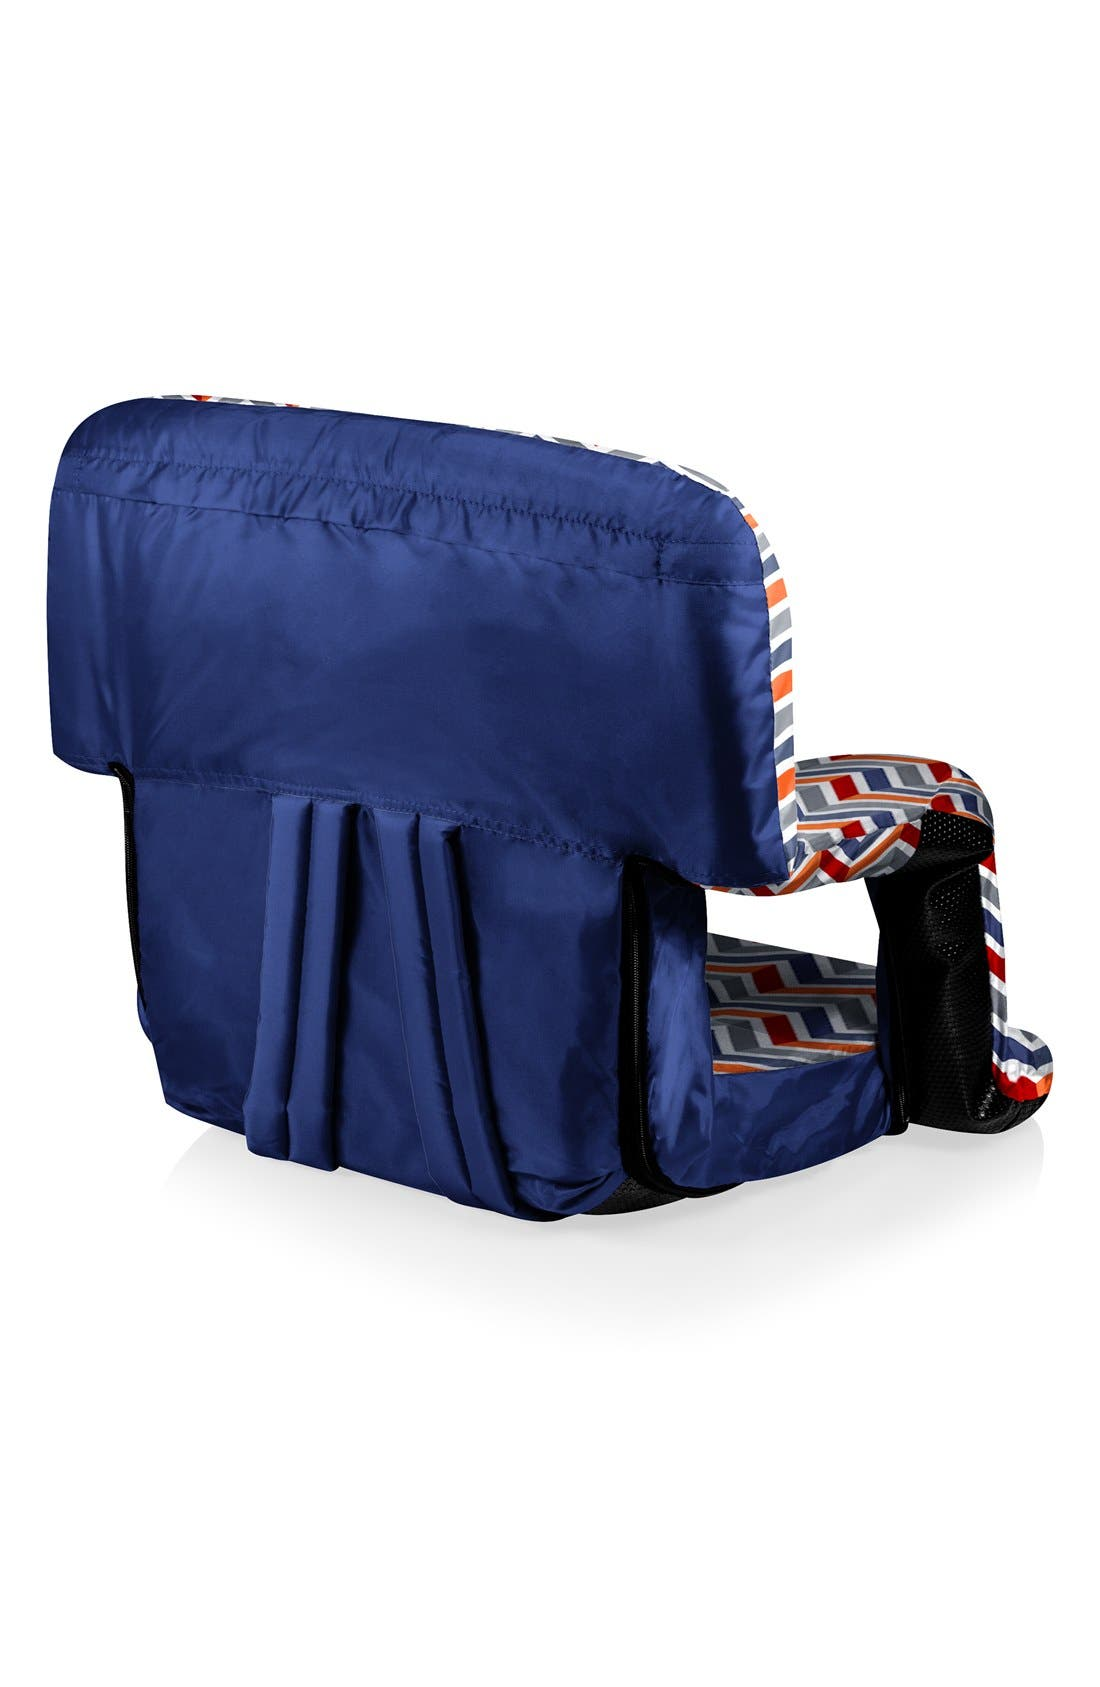 'Ventura Seat' Portable Fold-Up Chair,                             Alternate thumbnail 2, color,                             VIBE